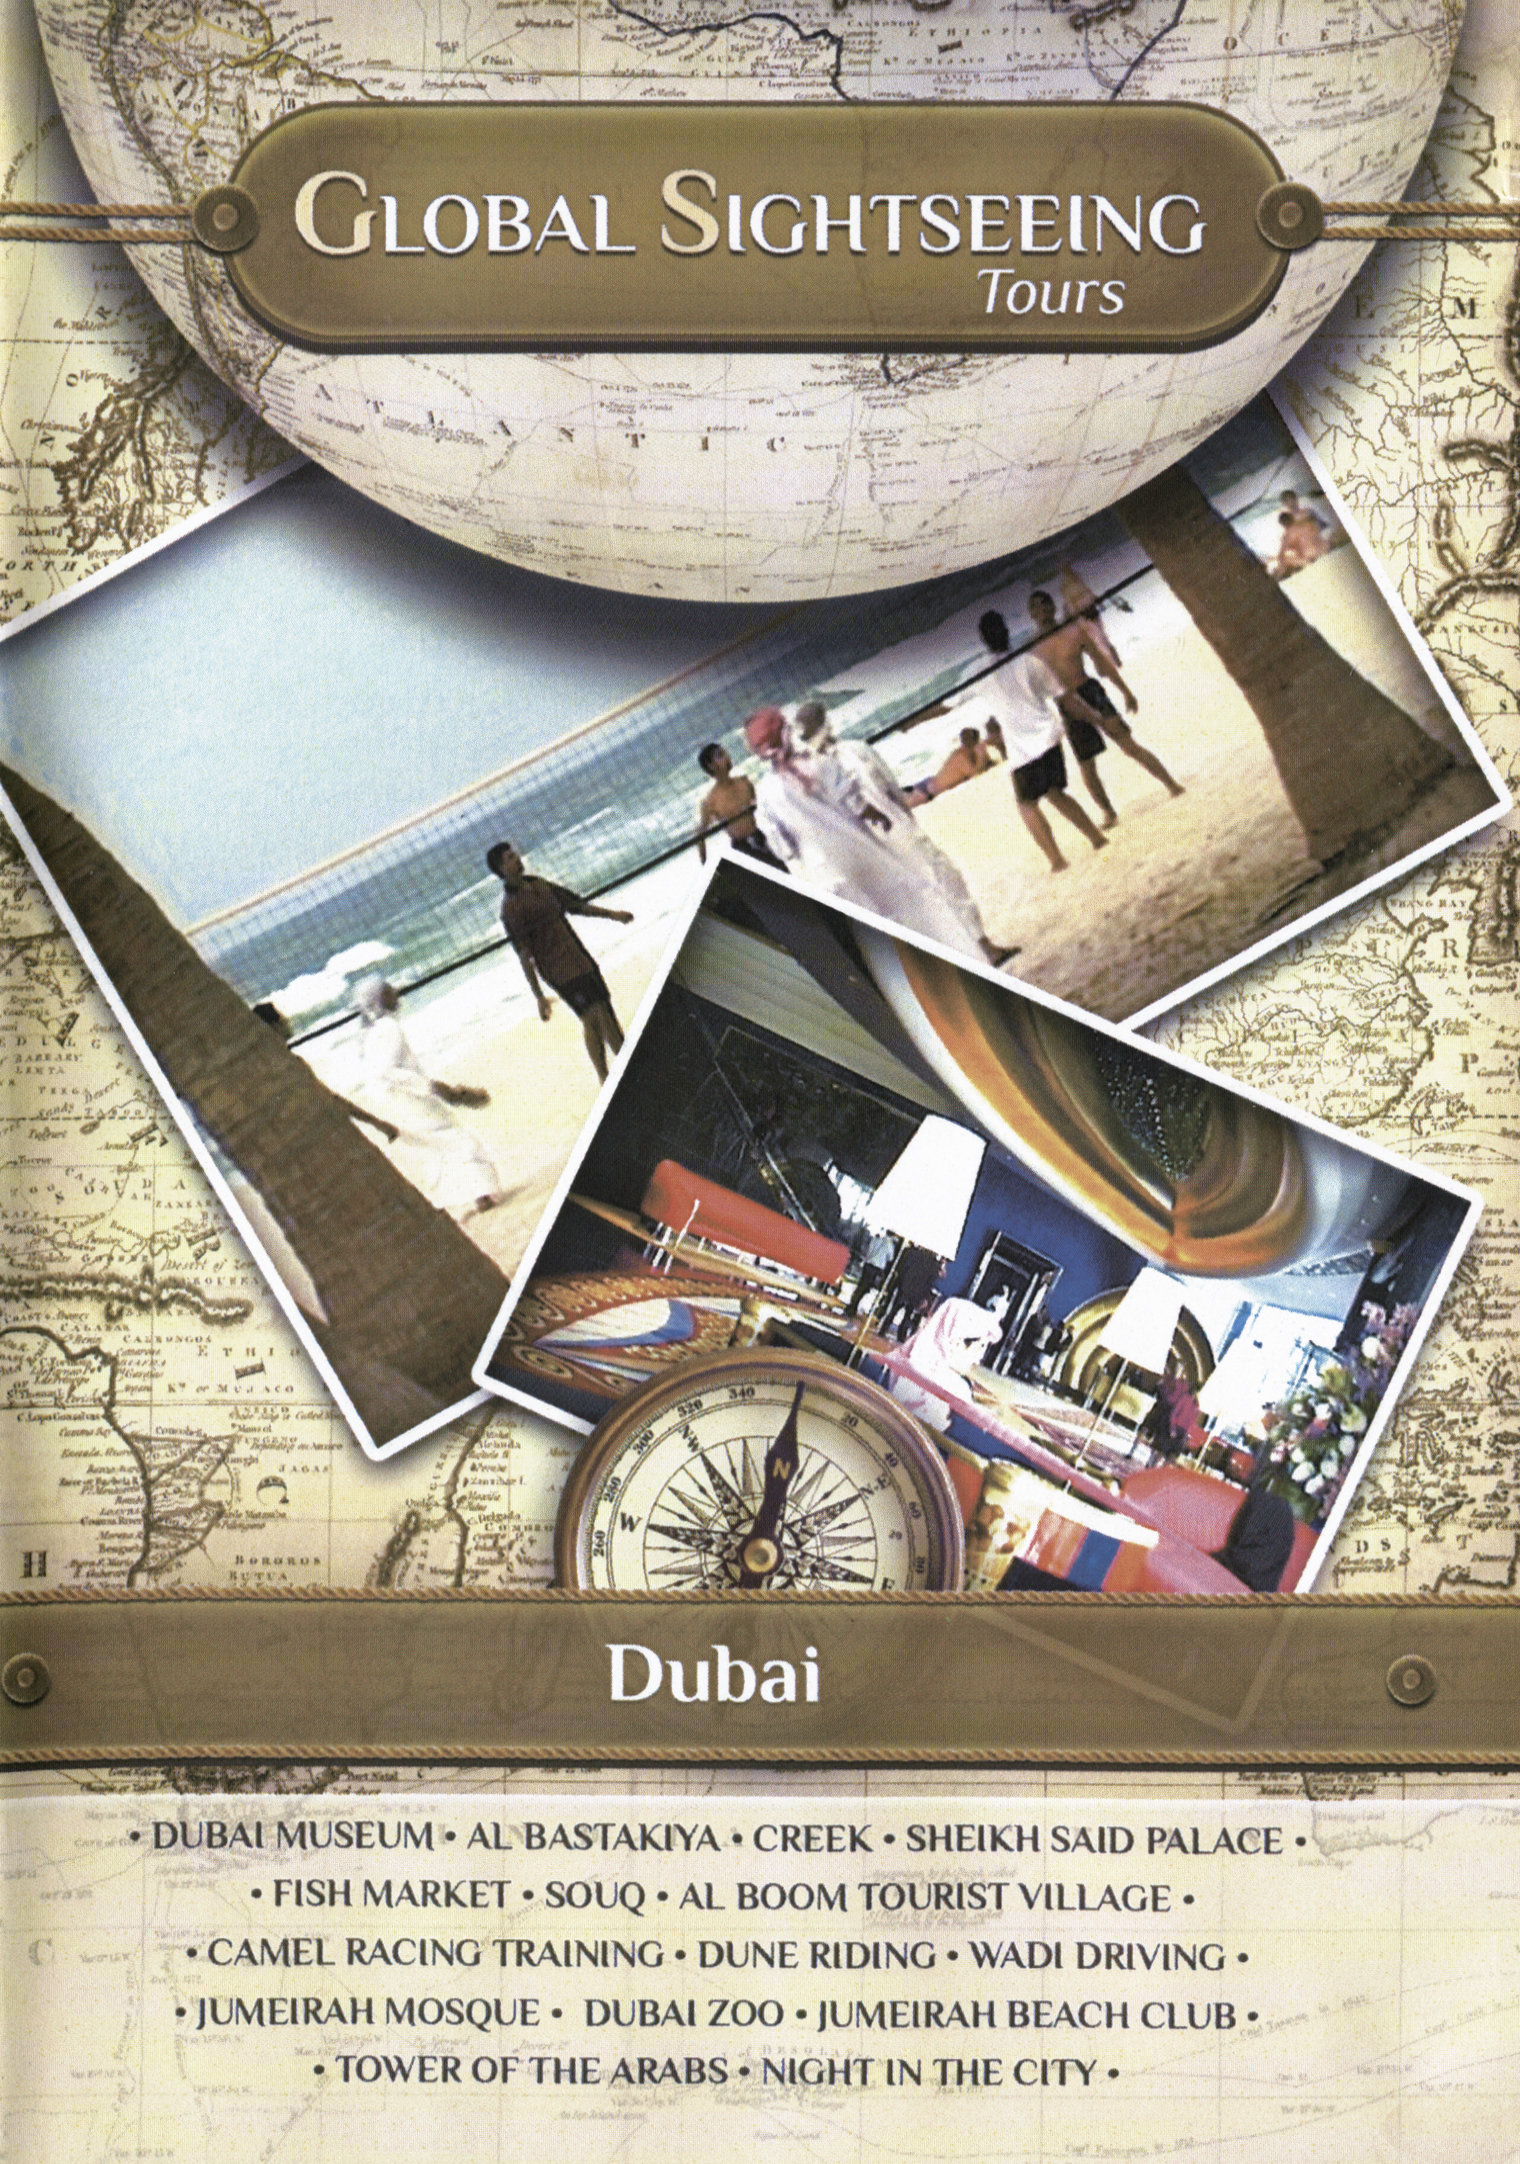 Global Sightseeing Tours: Dubai